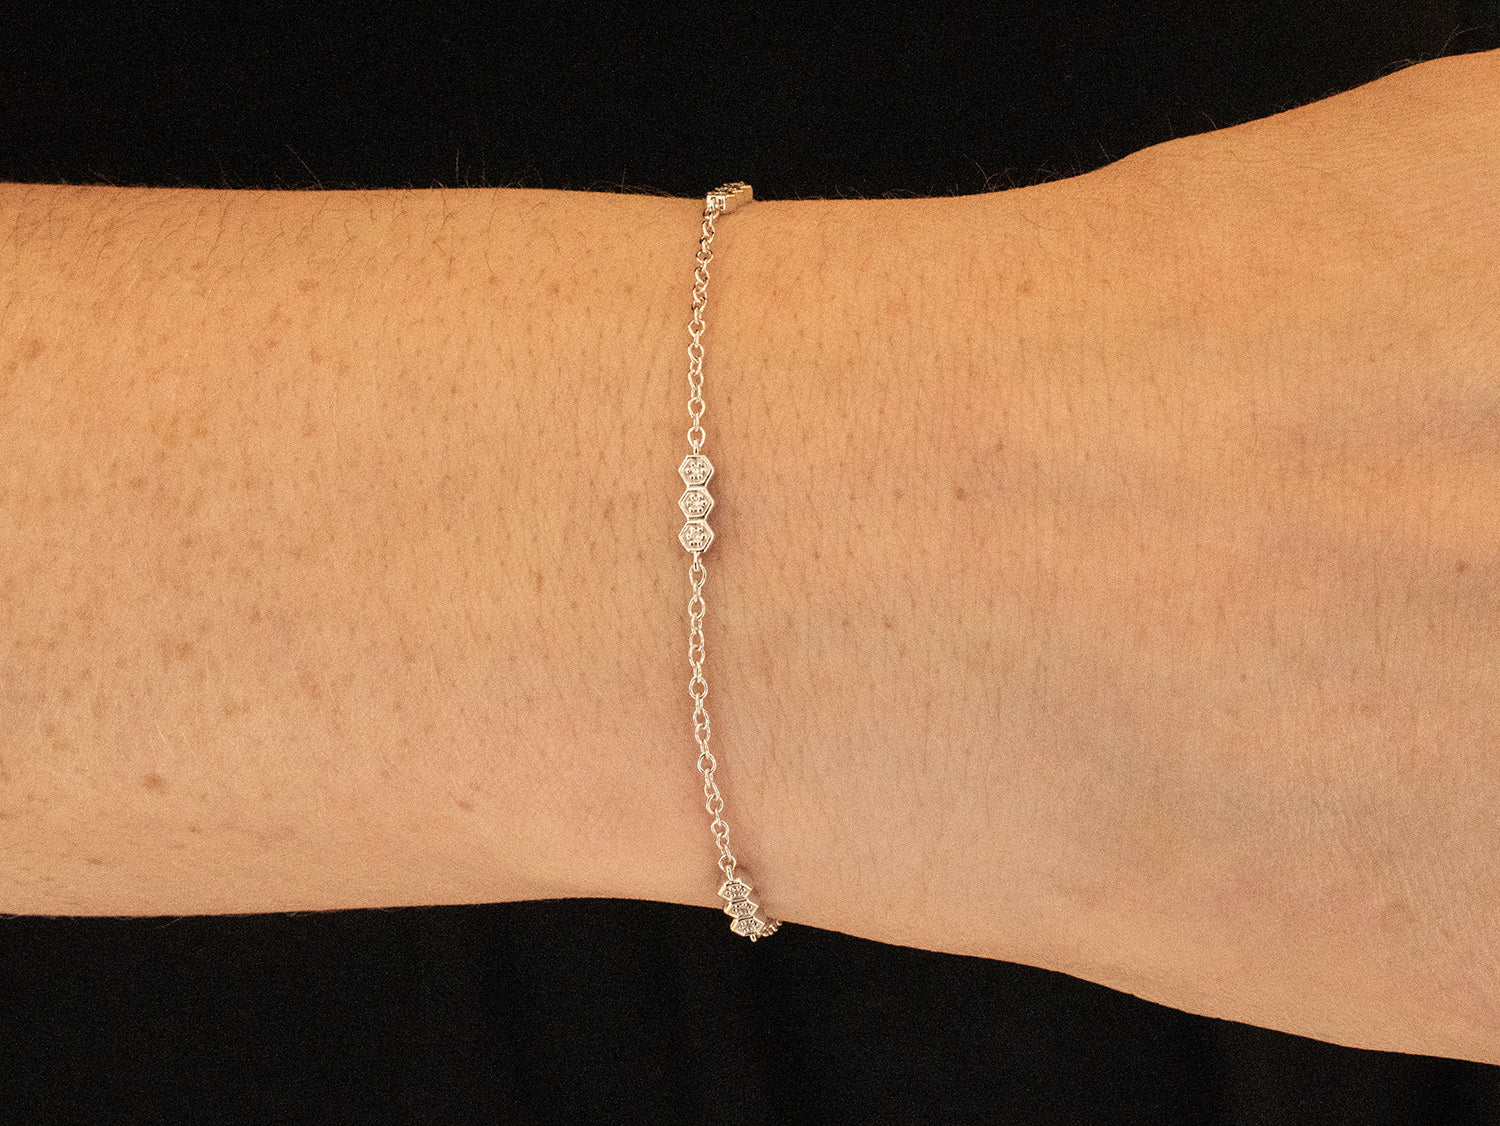 14K White Gold and Diamond Bracelet at the Best Jewelry Store in Washington DC